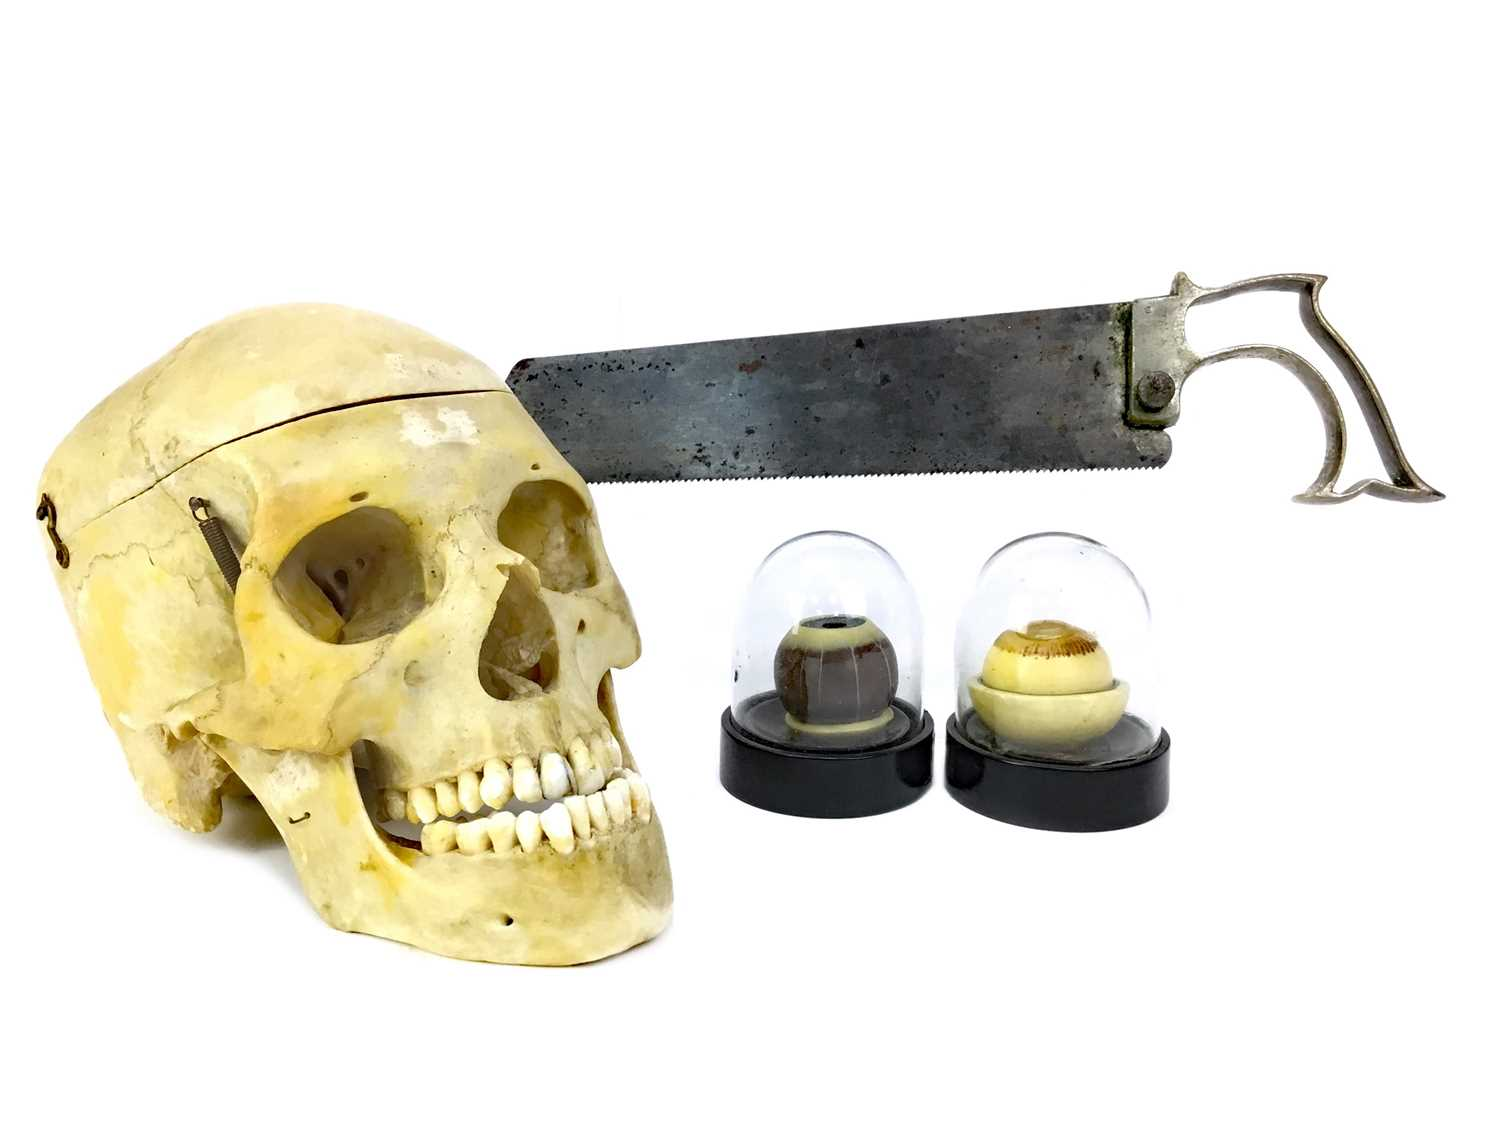 Lot 1127 - AN ANATOMICAL HUMAN SKULL AND OTHER MEDICAL ARTEFACTS